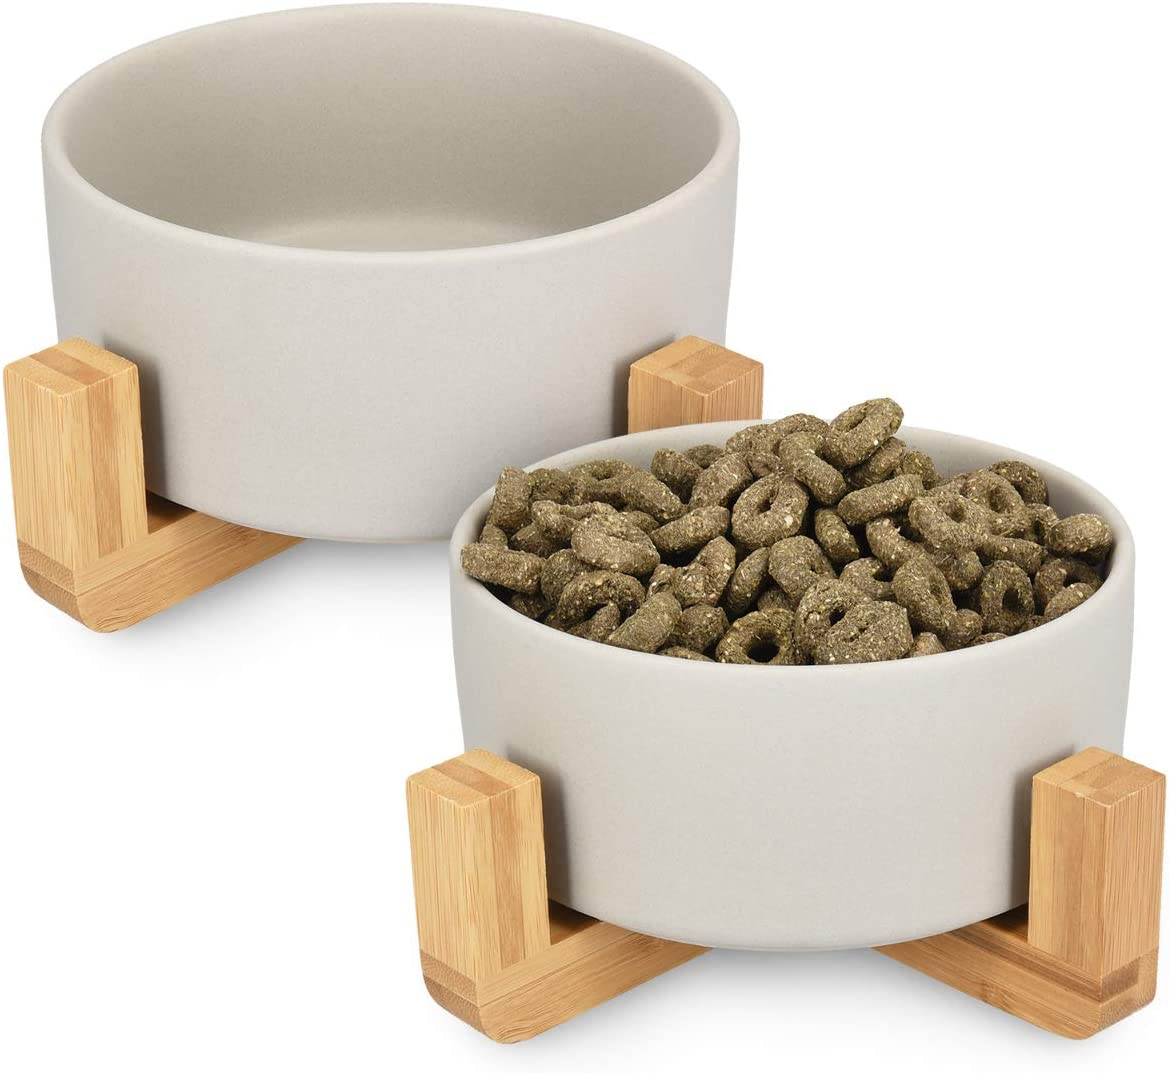 Navaris Ceramic Raised Pet Bowls with Bamboo Stands - Modern Food and Water Bowl Set for Cats and Small Dogs with Anti-Slip Elevated Wooden Stand